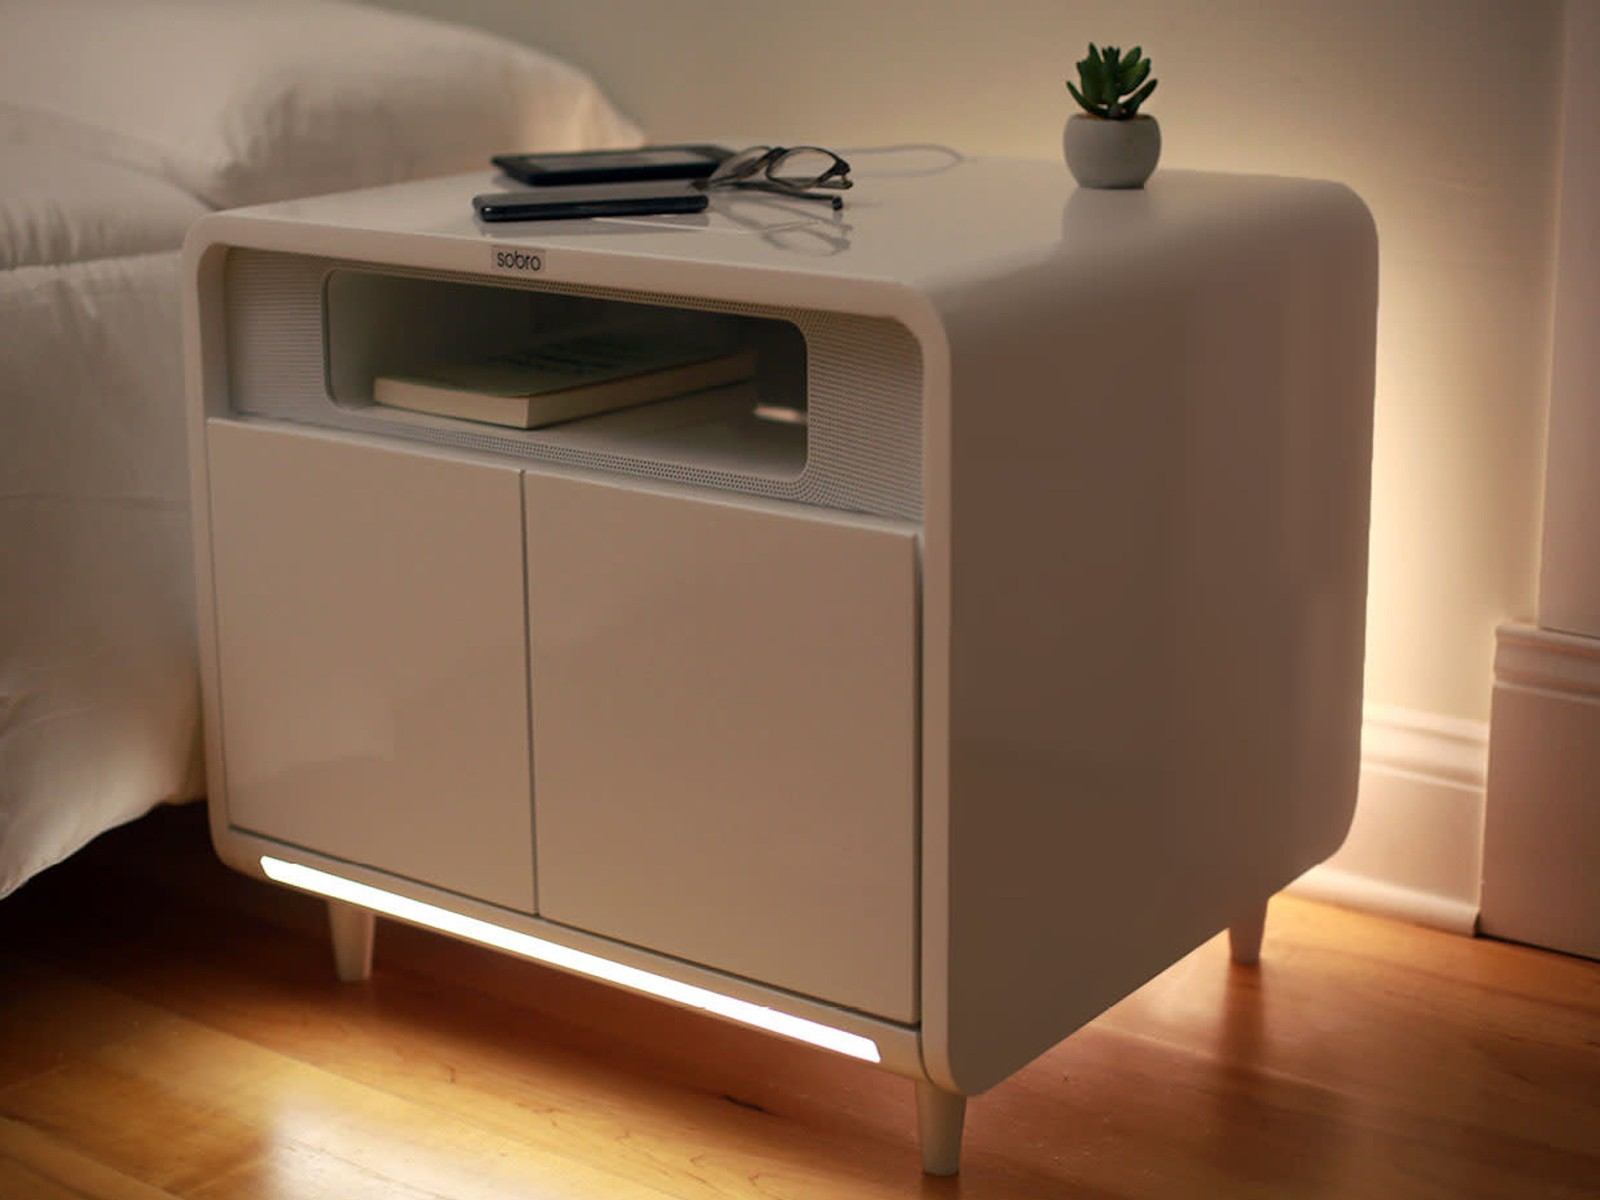 the sobro smart side table wants improve your bedside experience sombro hero small pine accent usually home water bottle iphone complete with annoying charging cord headphones